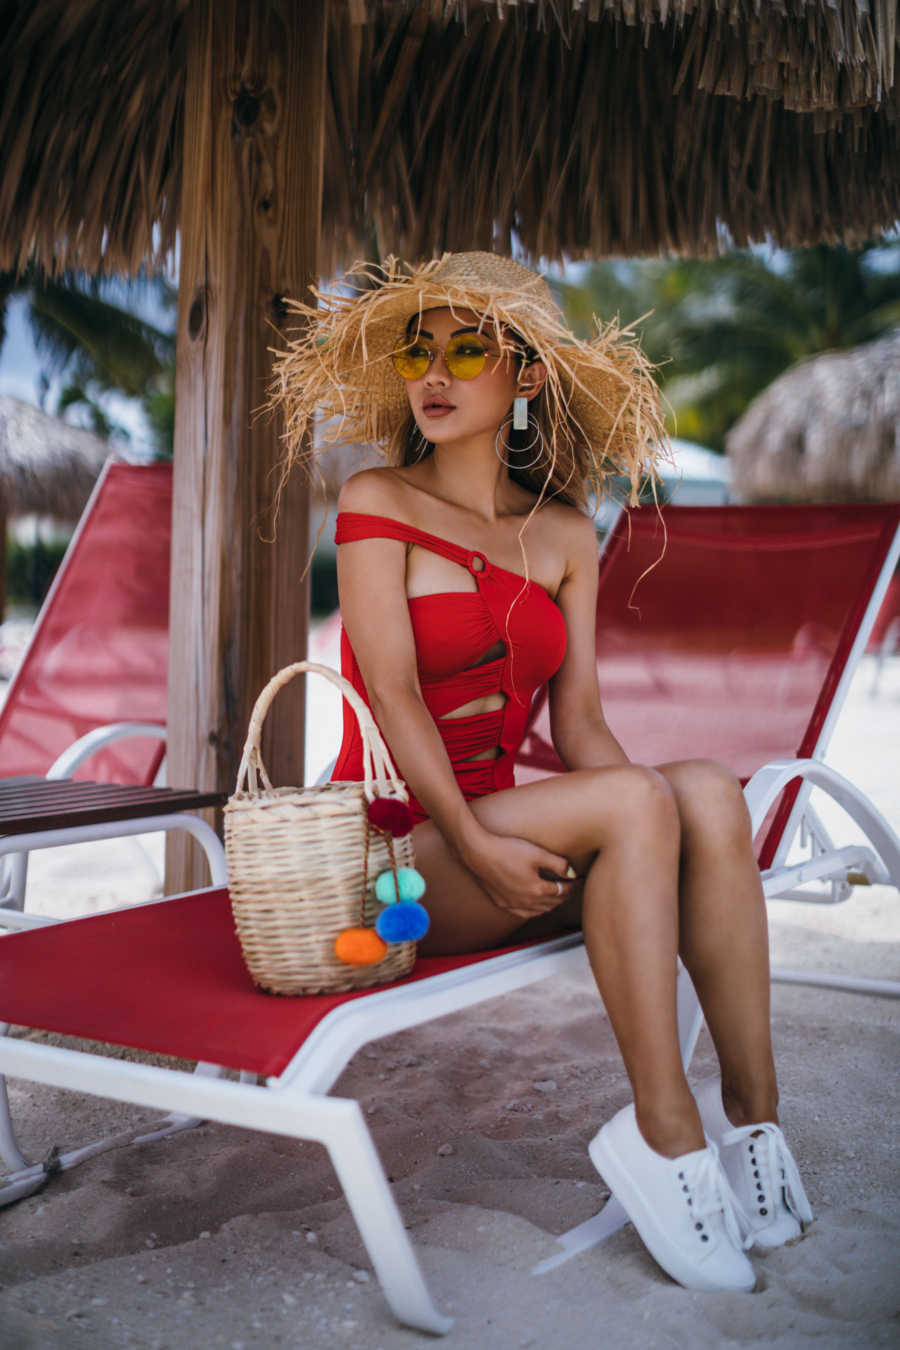 The Best Summer Trends to Buy Now - one piece swimsuit // Notjessfashion.com